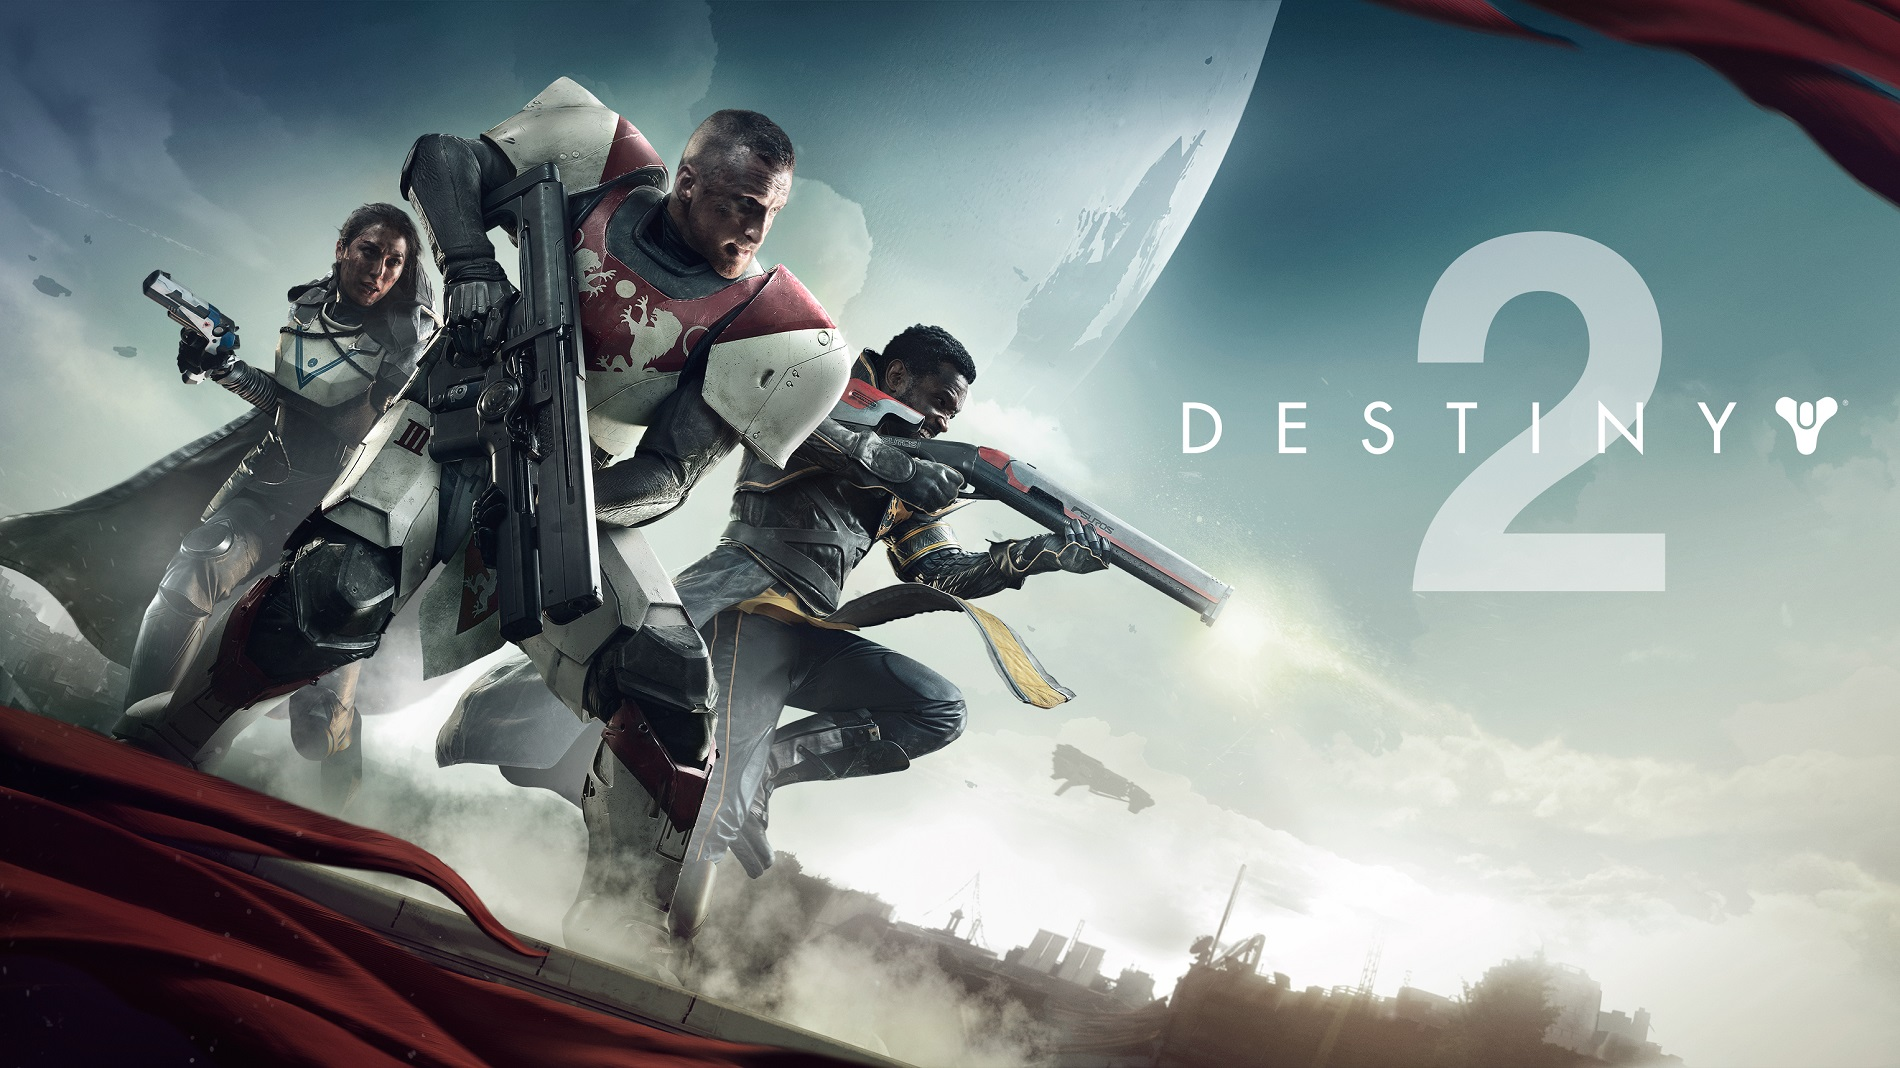 Director Jordan Vogt-Roberts Brings Destiny 2 To Life In New Trailer